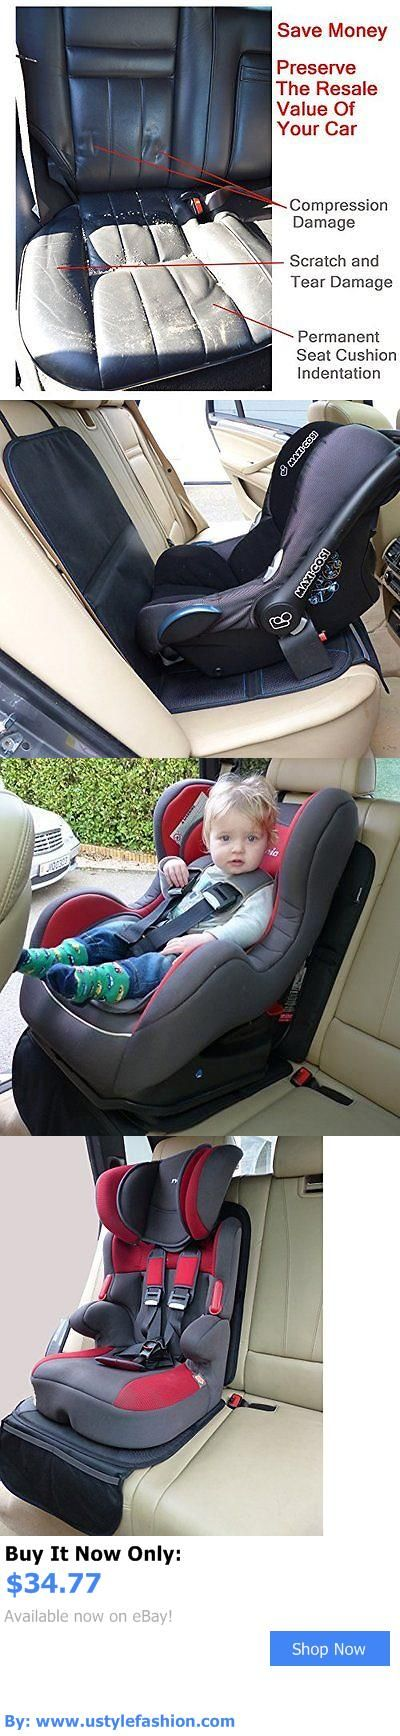 Car Seat Accessories: Child Car Seat Protector Mat - Covers Under Child Seat - Auto Leather Saver For BUY IT NOW ONLY: $34.77 #ustylefashionCarSeatAccessories OR #ustylefashion